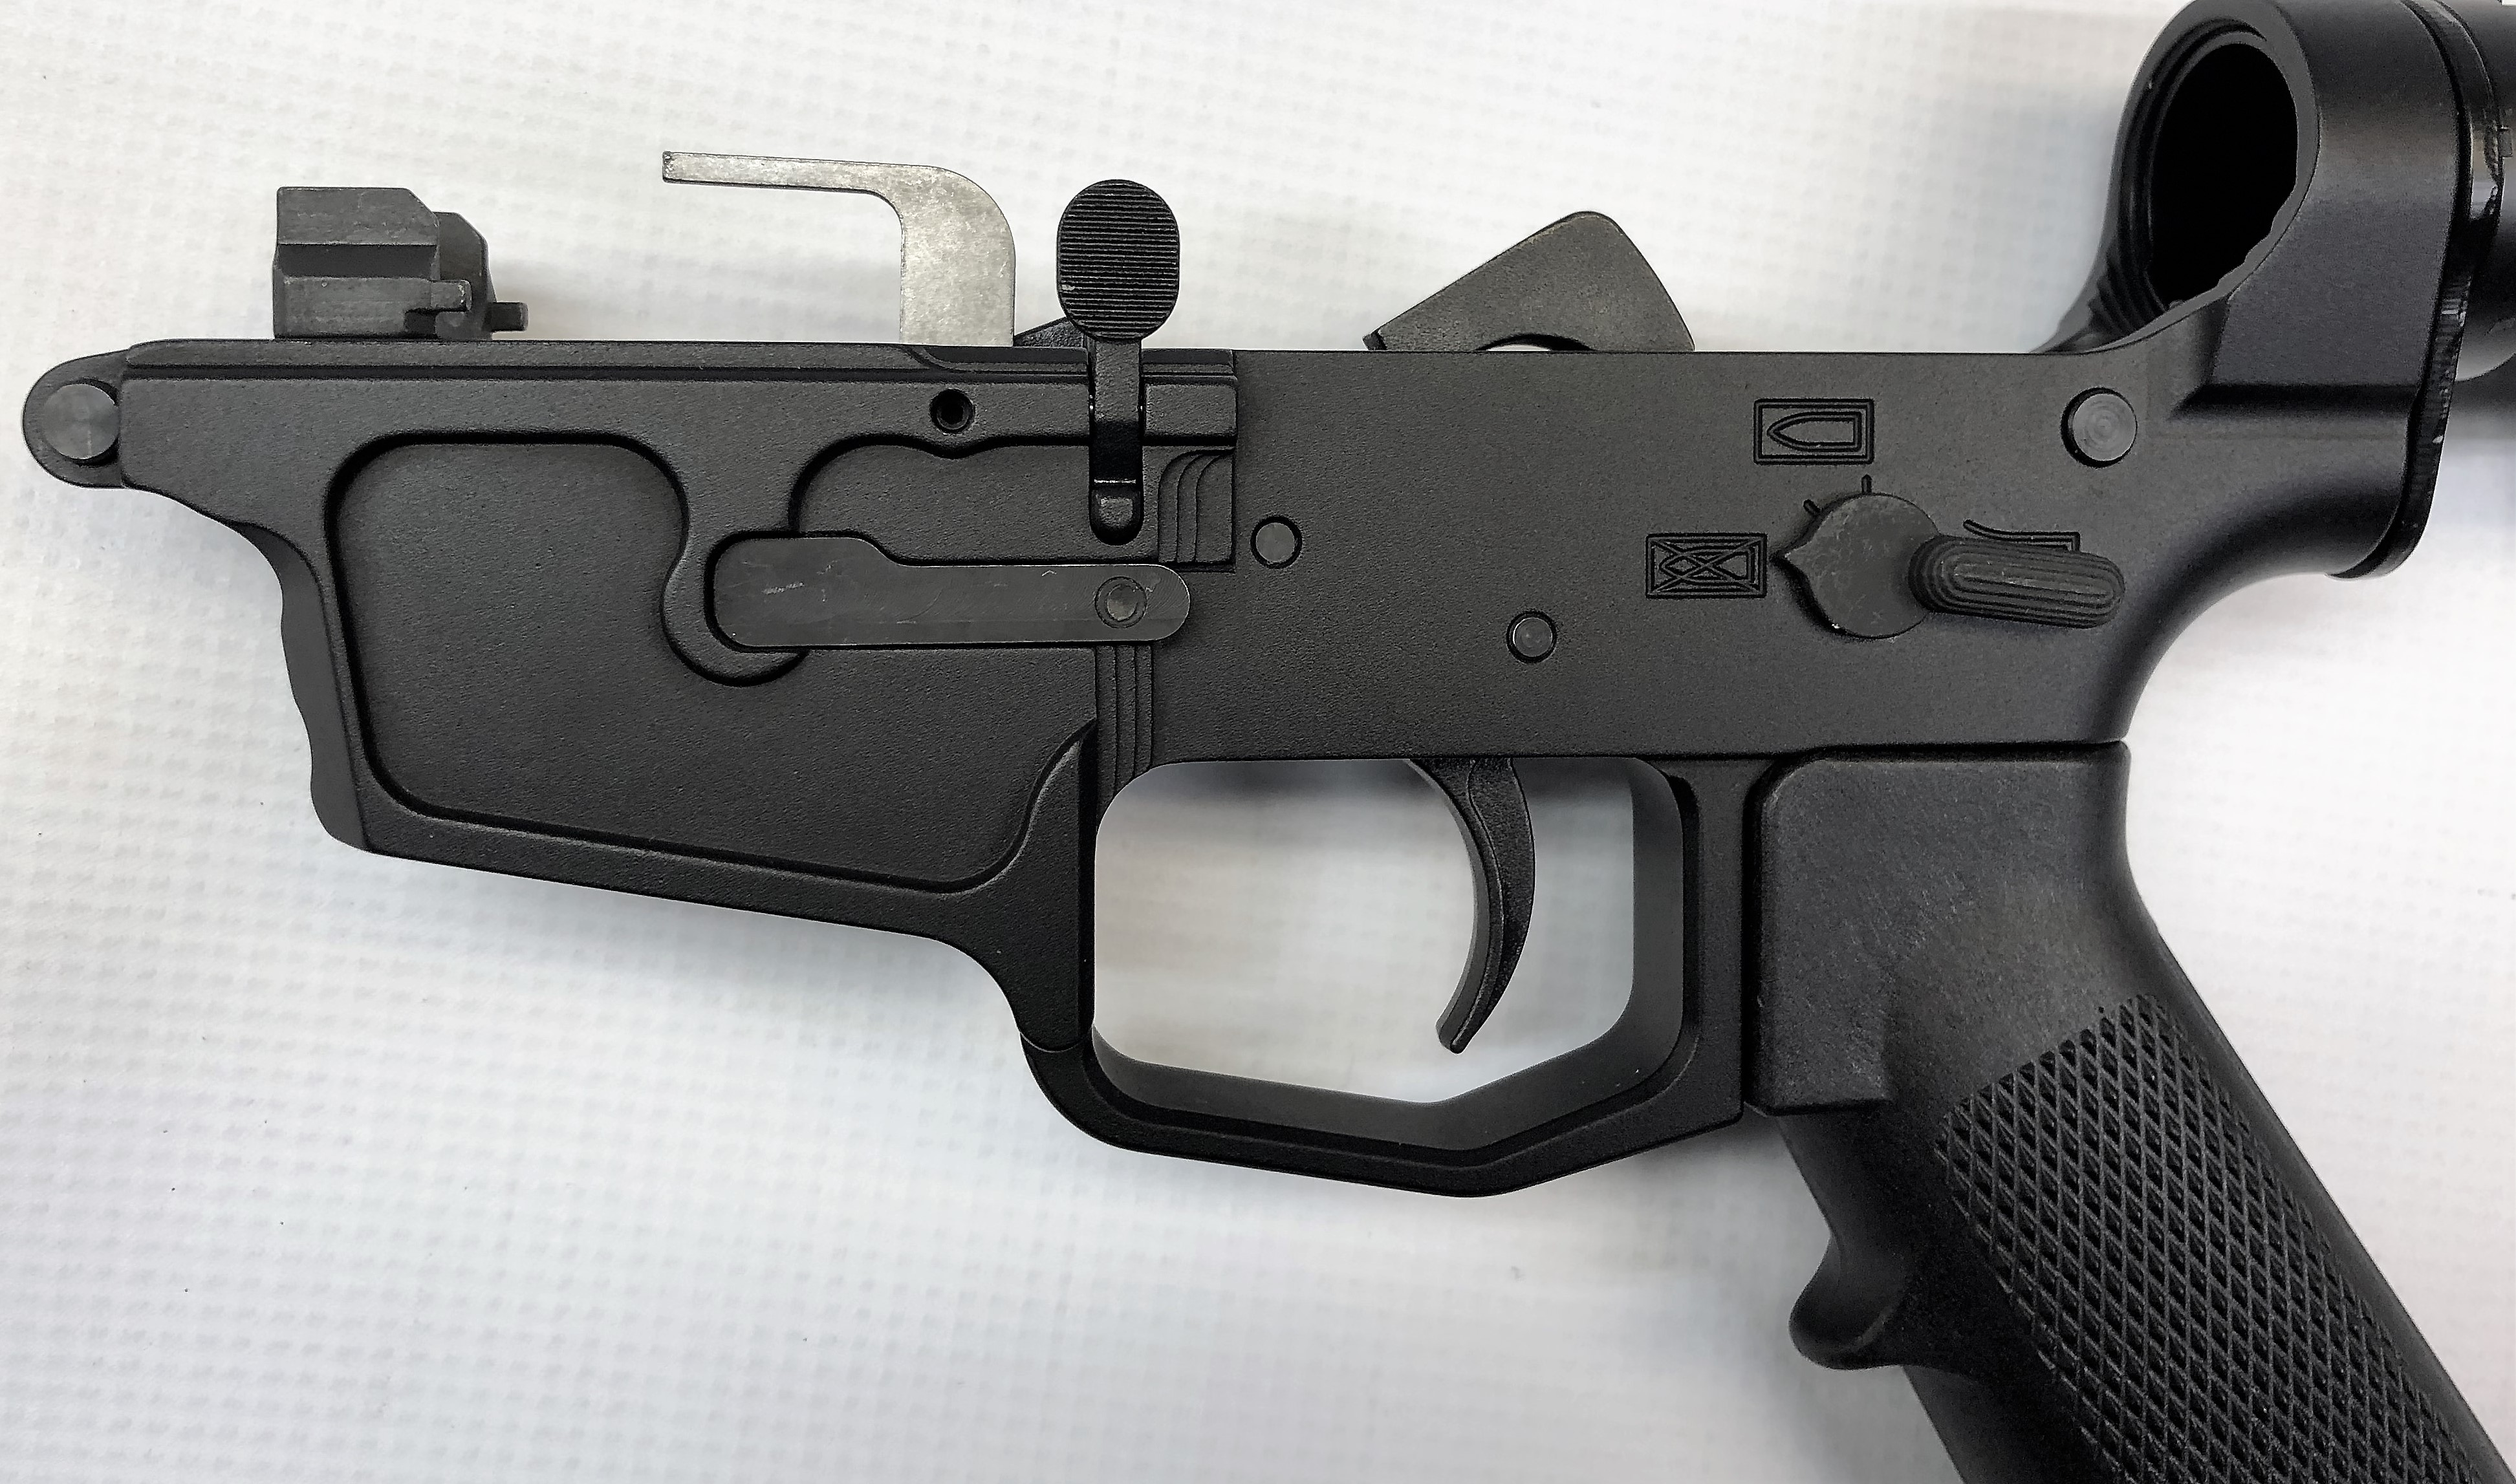 Complete C5 Lower with Milspec Grip and M4 Stock